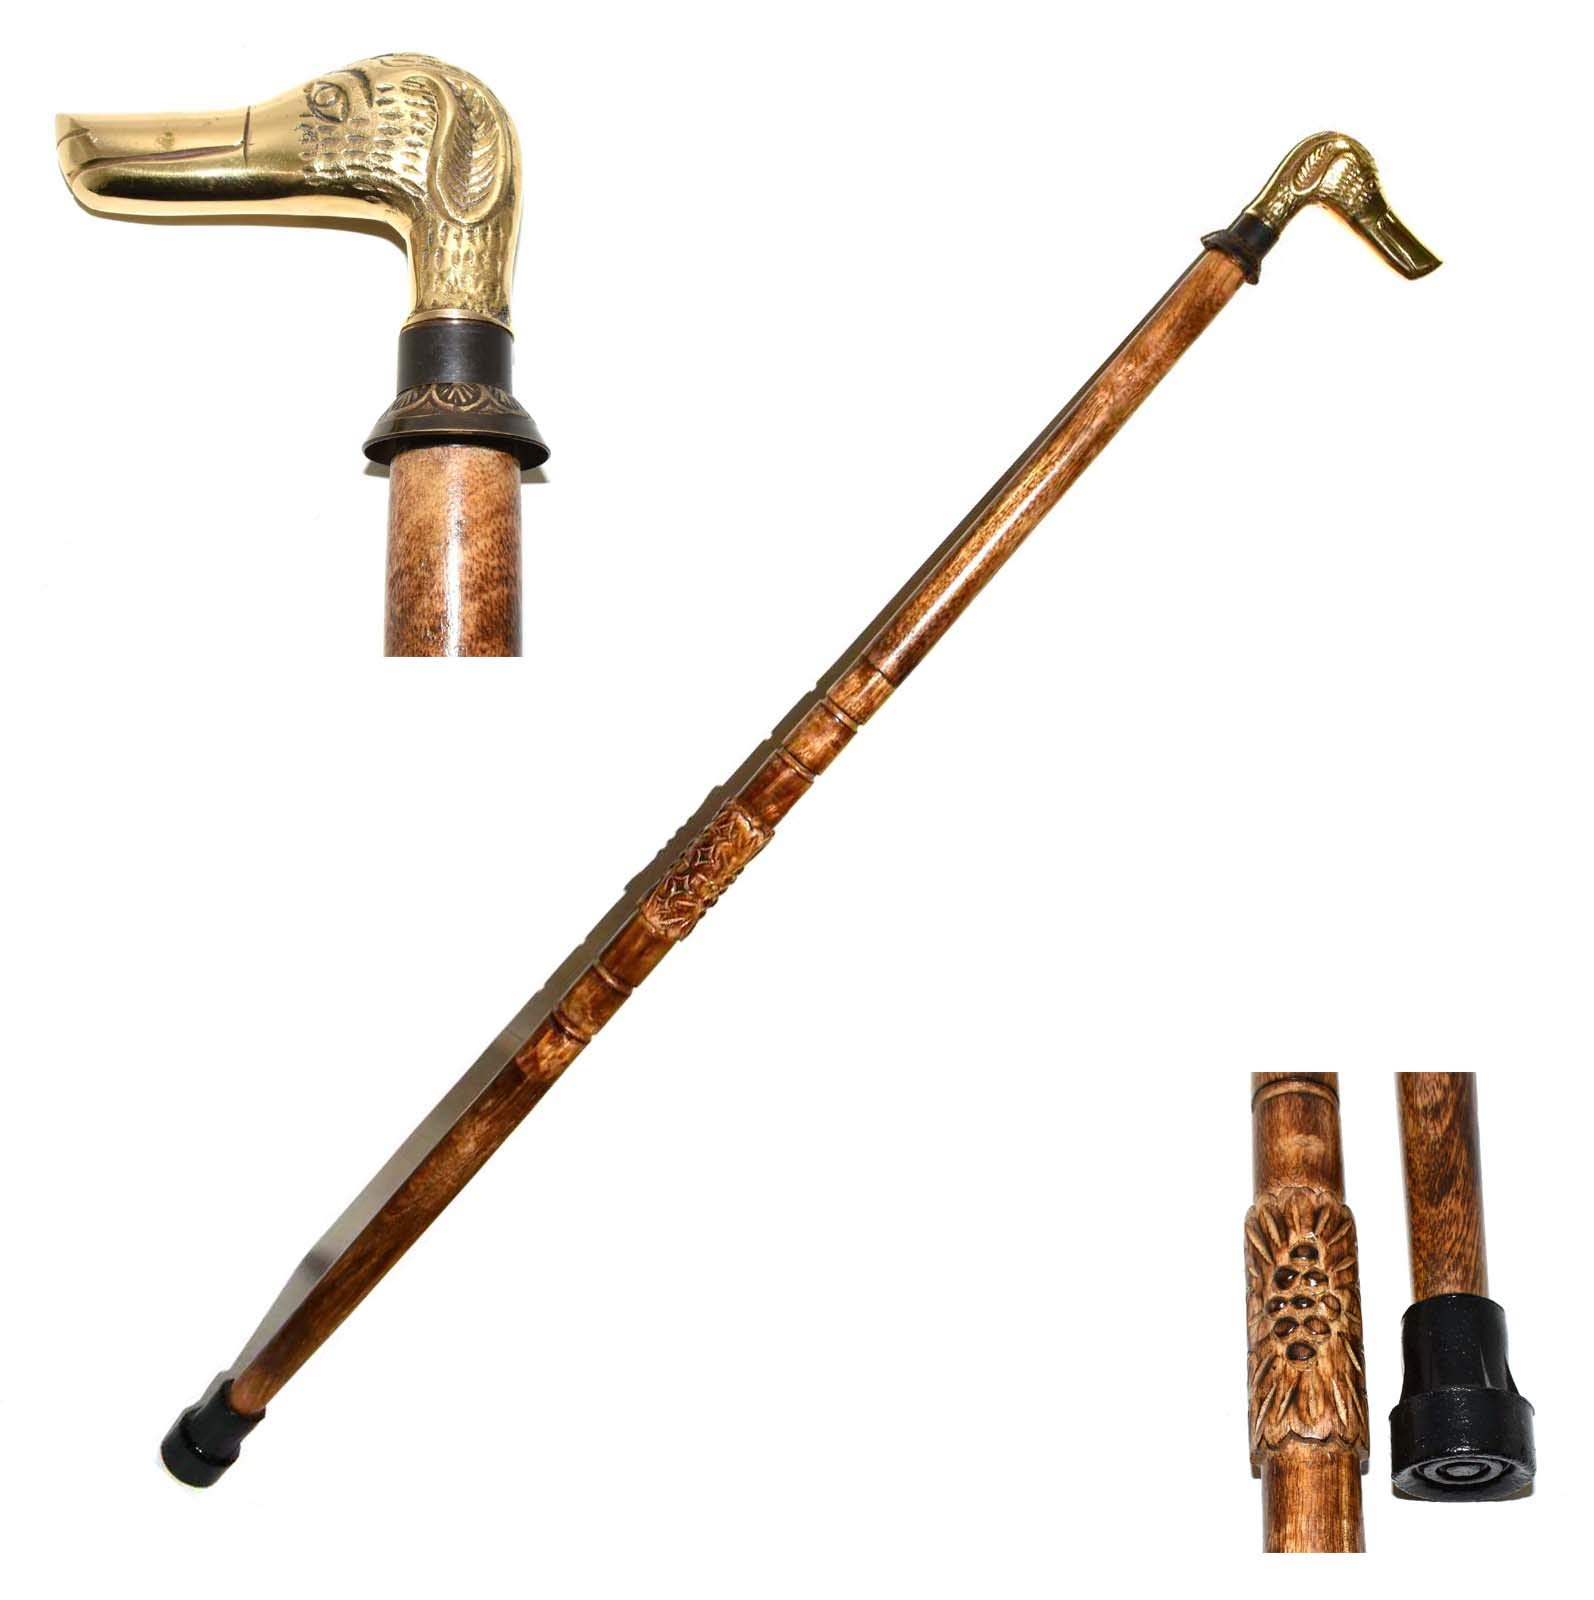 Nautical Gift Decor Dog Head Handle Walking Stick - Classic Style Wooden Canes and Walking Sticks for Men and Women